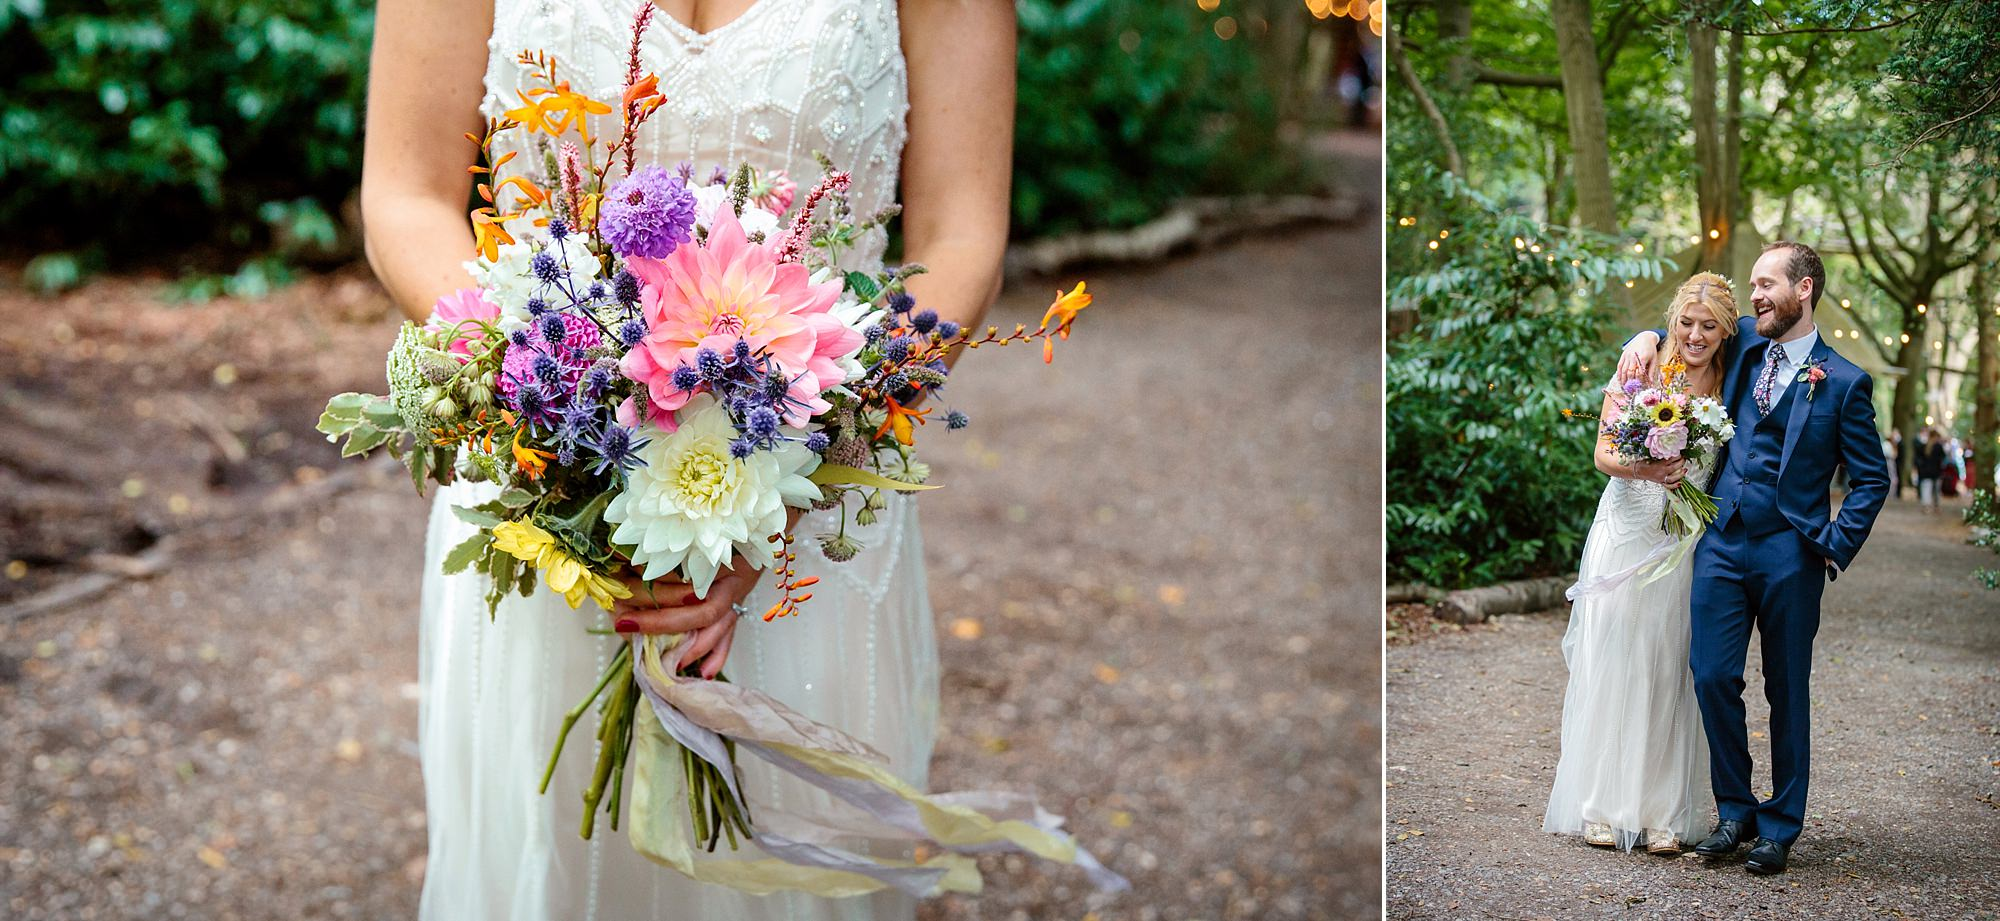 Woodland Weddings Tring bride with bouquet